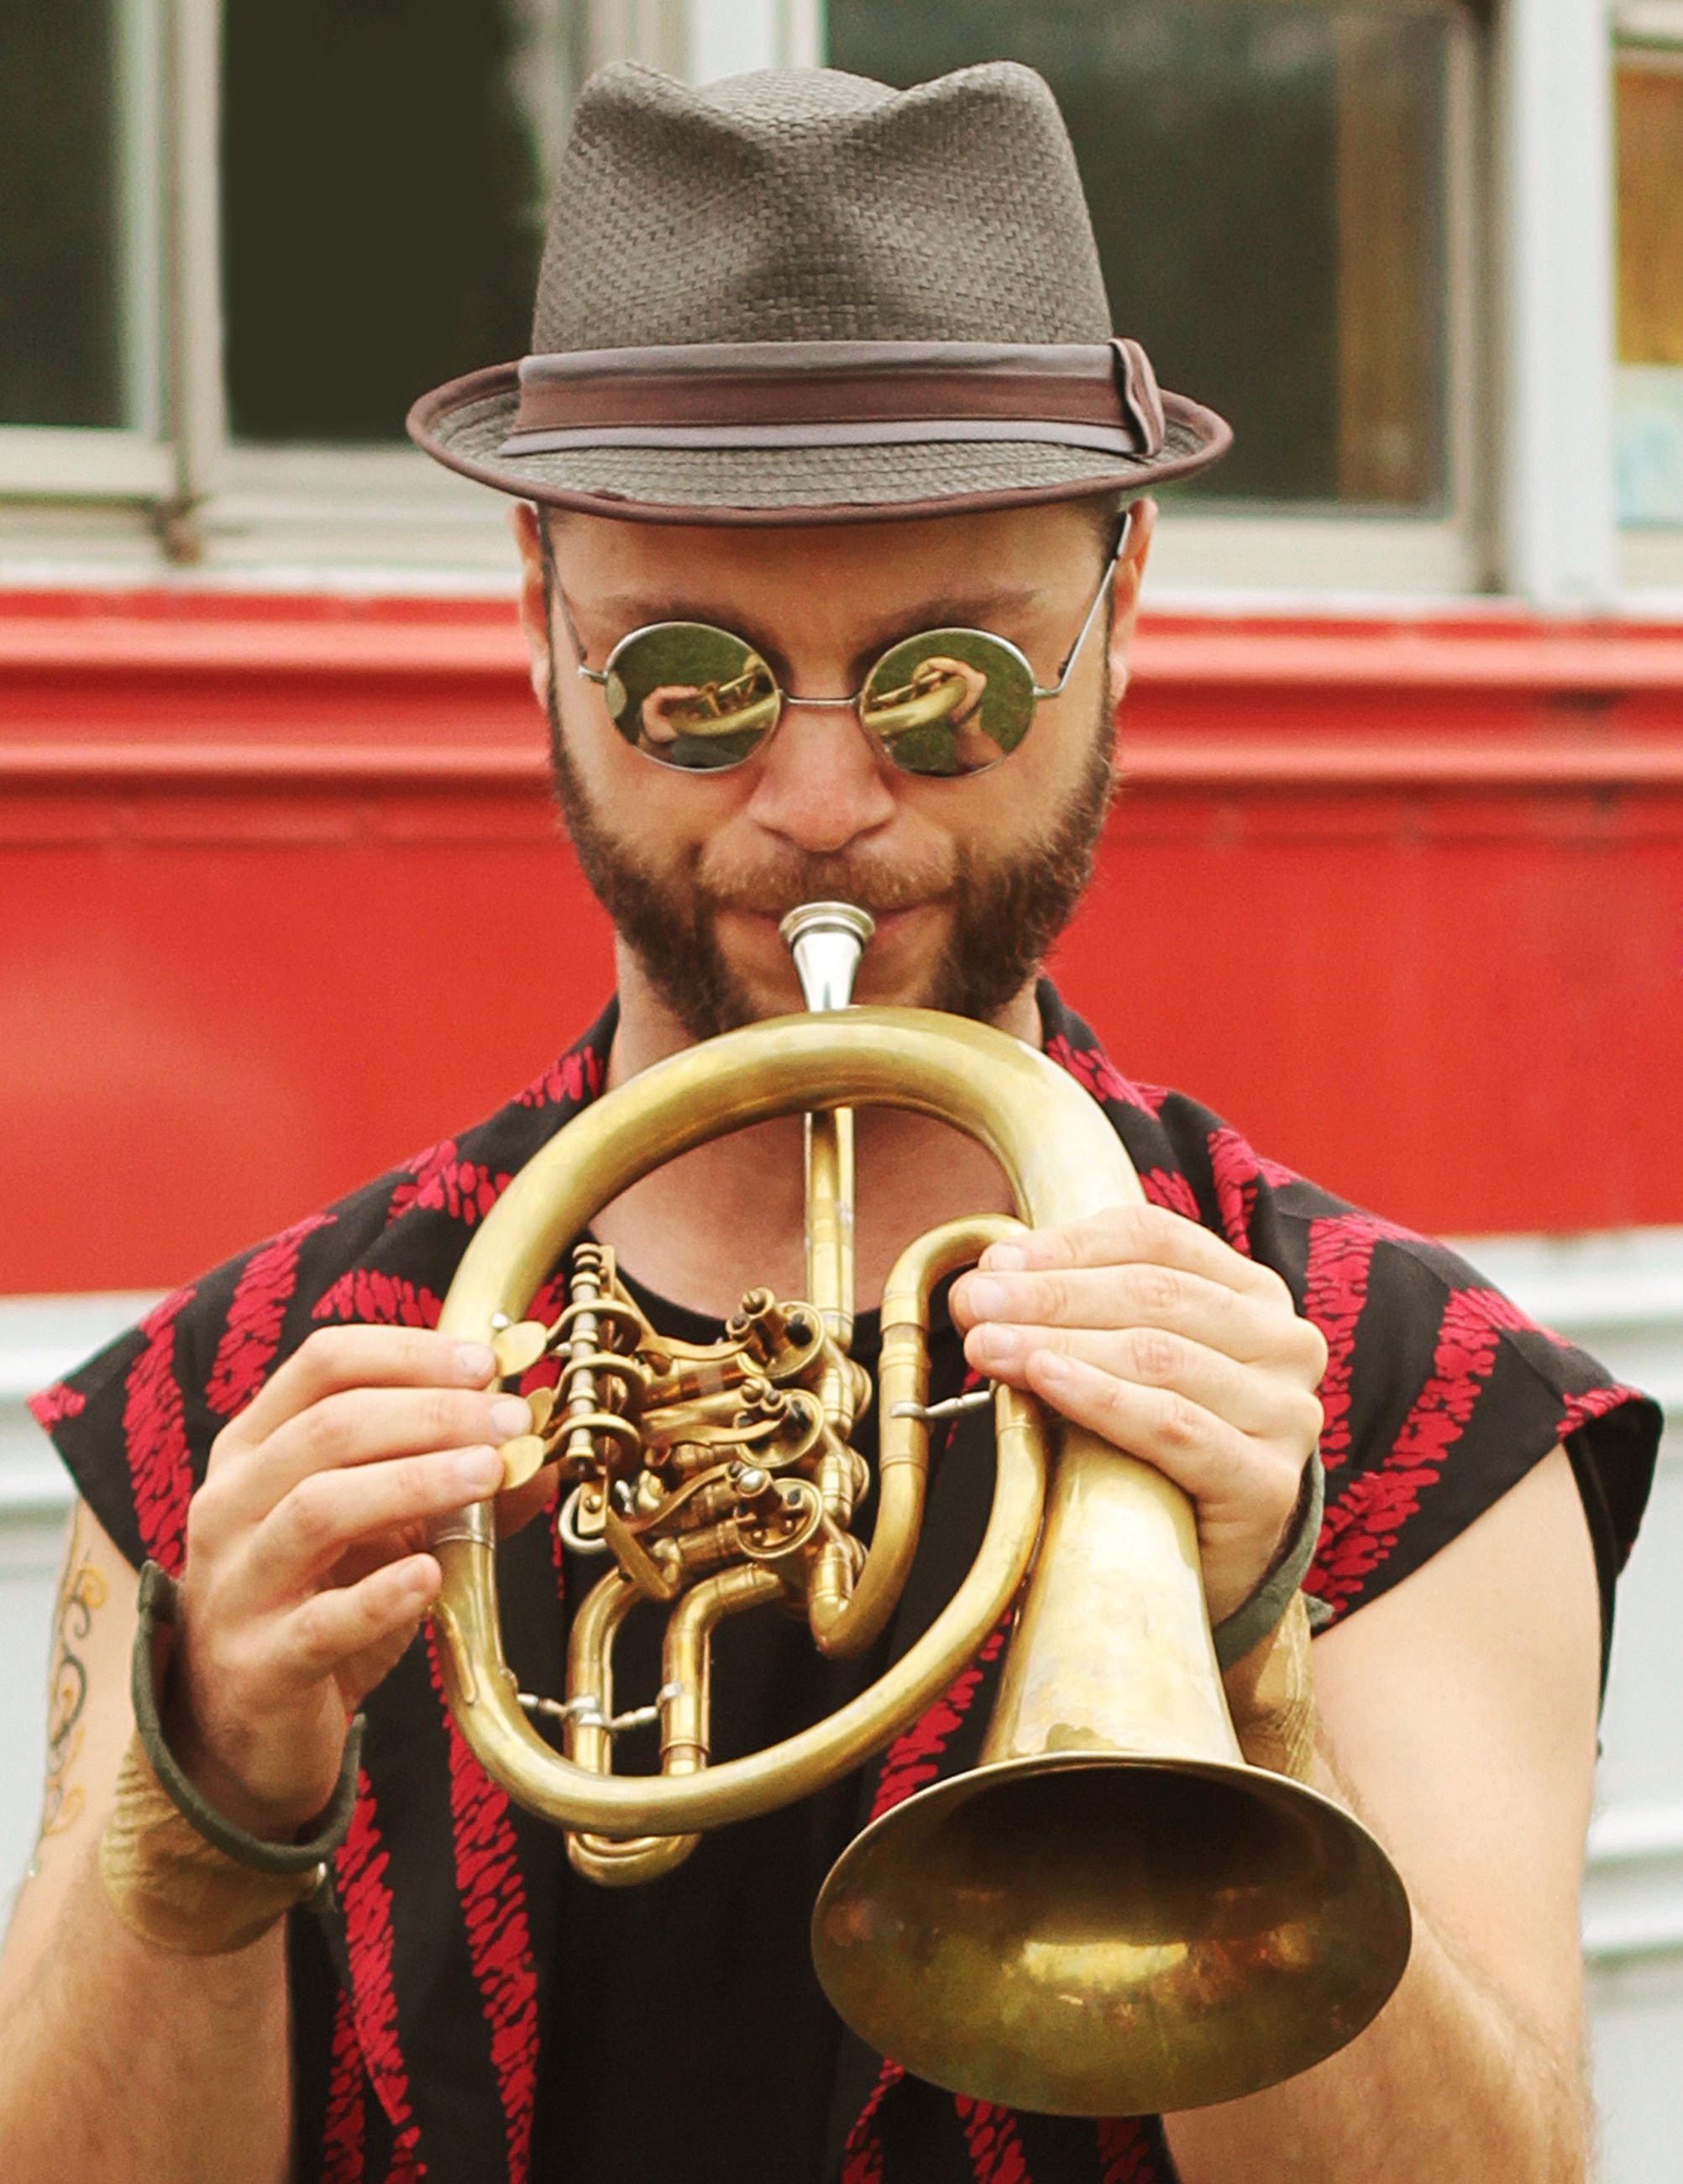 music, musical instrument, one person, hat, holding, front view, portrait, real people, leisure activity, clothing, lifestyles, artist, arts culture and entertainment, men, musician, brass instrument, brass, playing, males, trumpet, skill, mature men